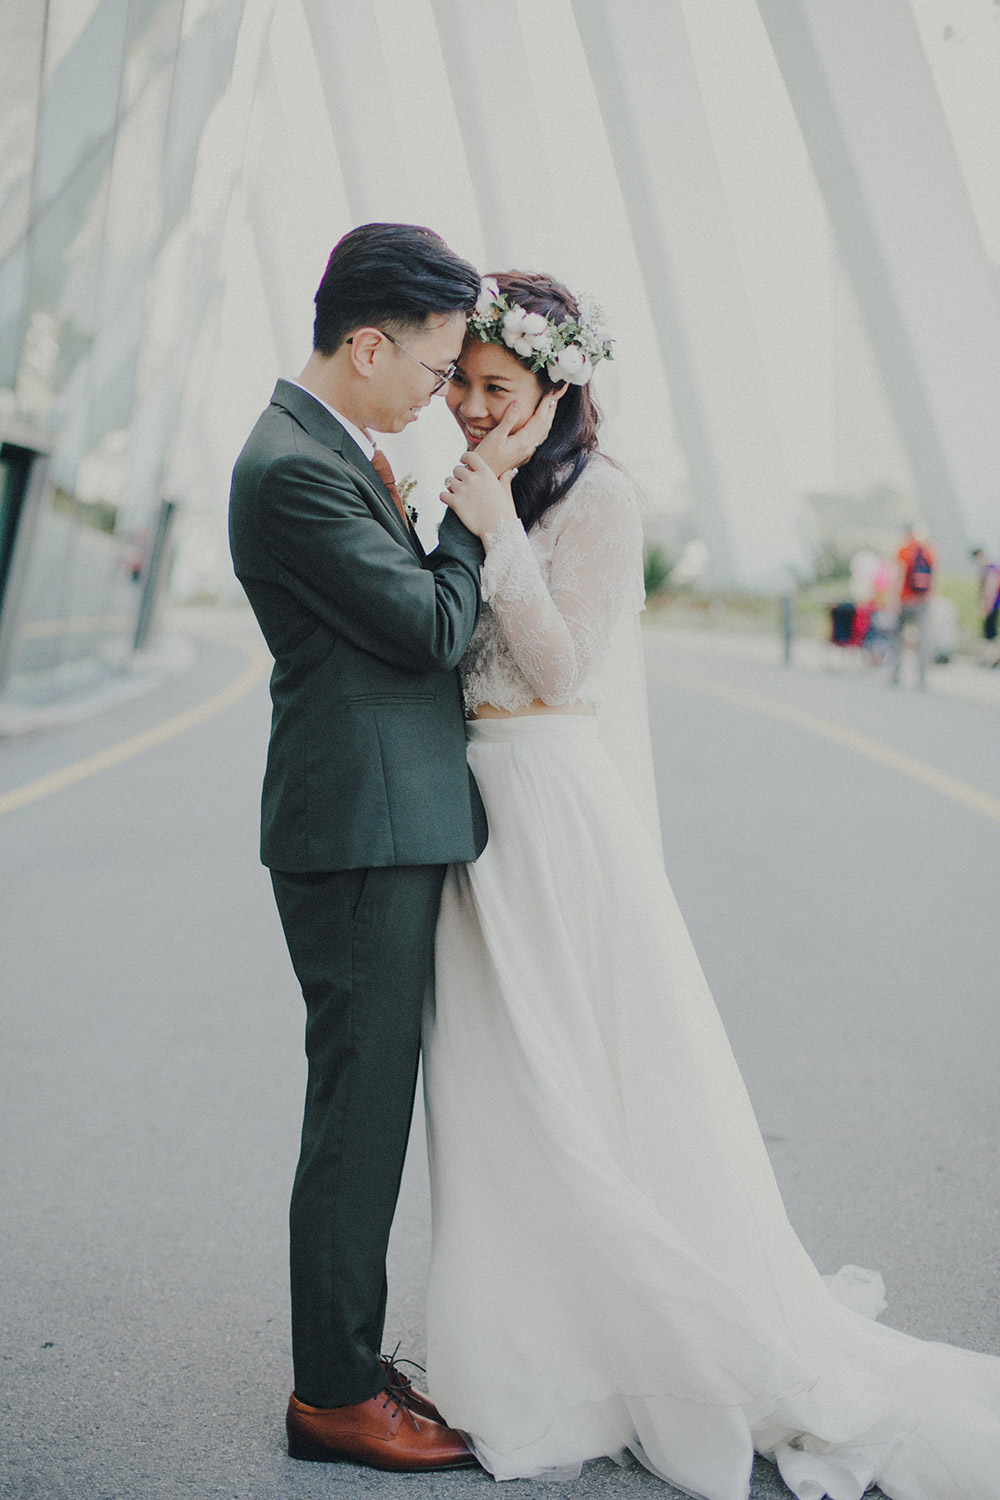 Photo by Samuel Goh Photography. www.theweddingnotebook.com